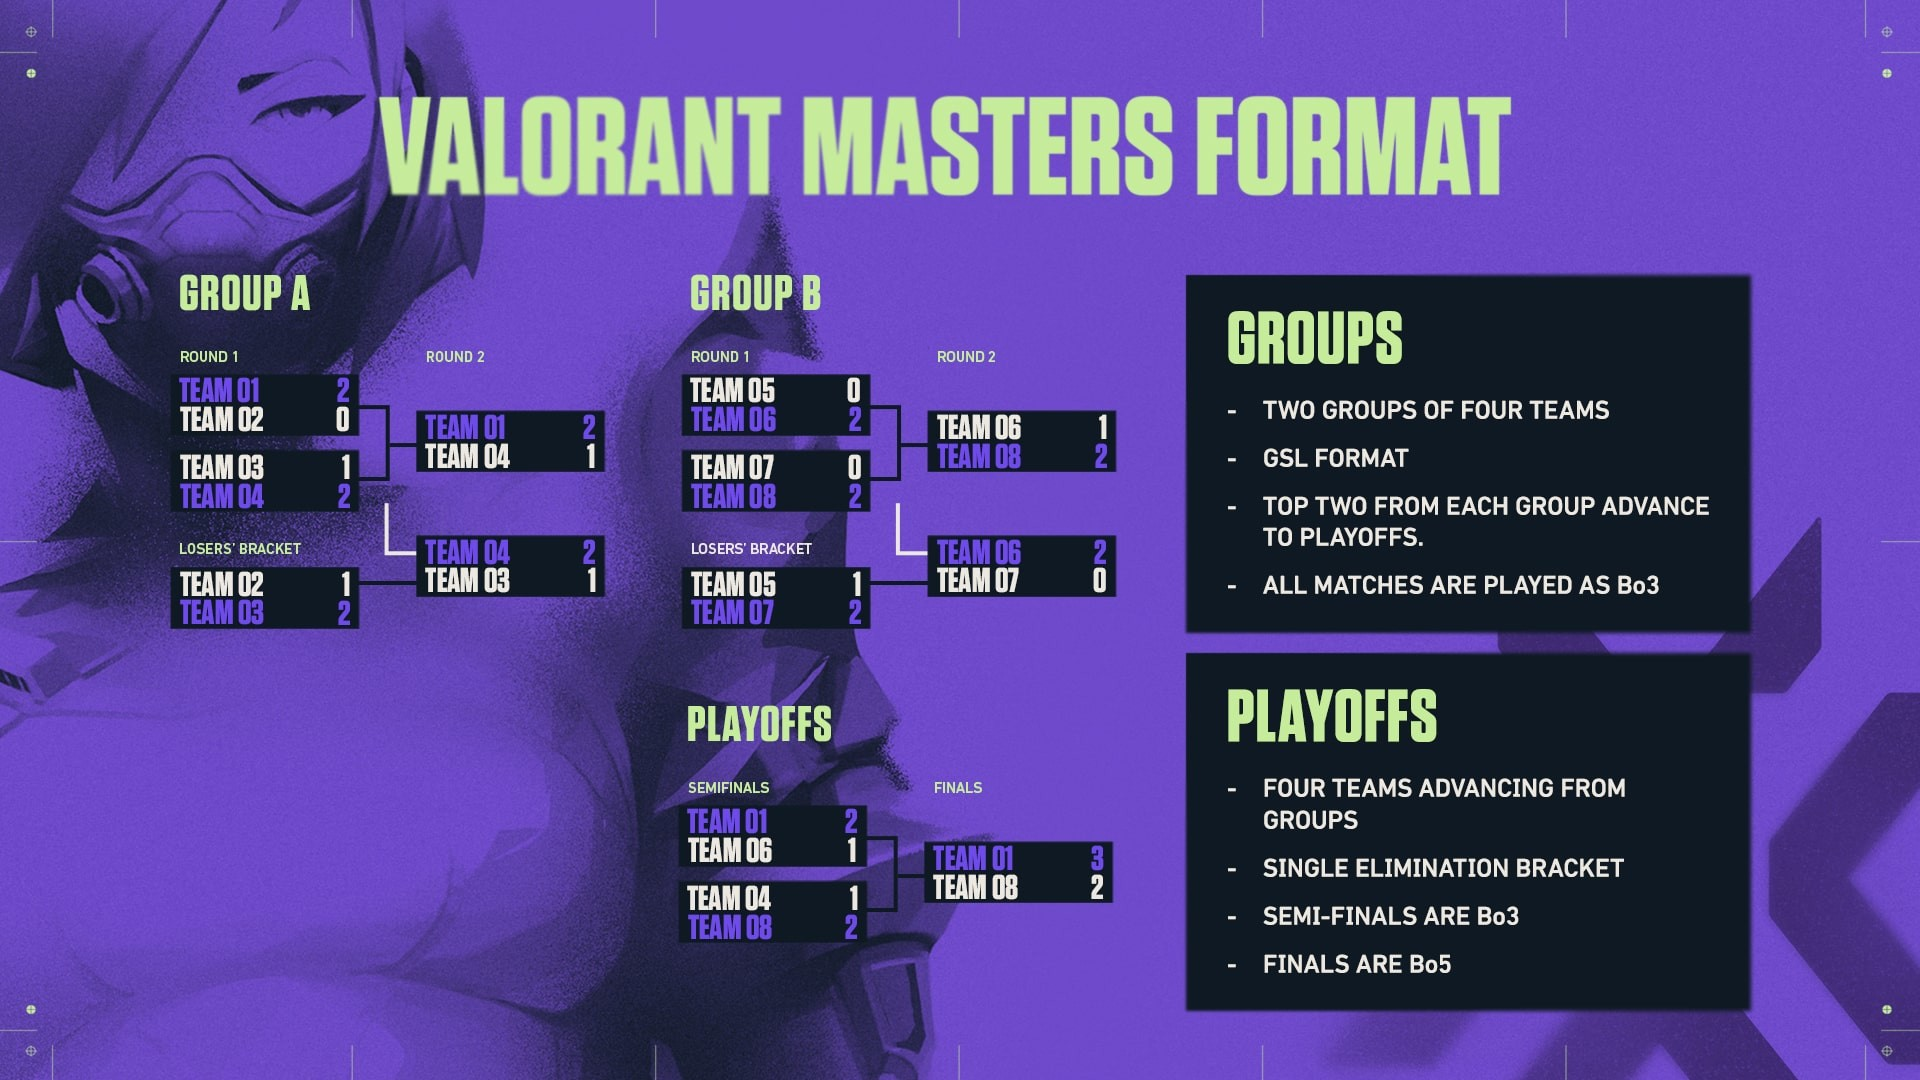 The image explains the tournament format with GSL group stage and a single-elimination bracket.